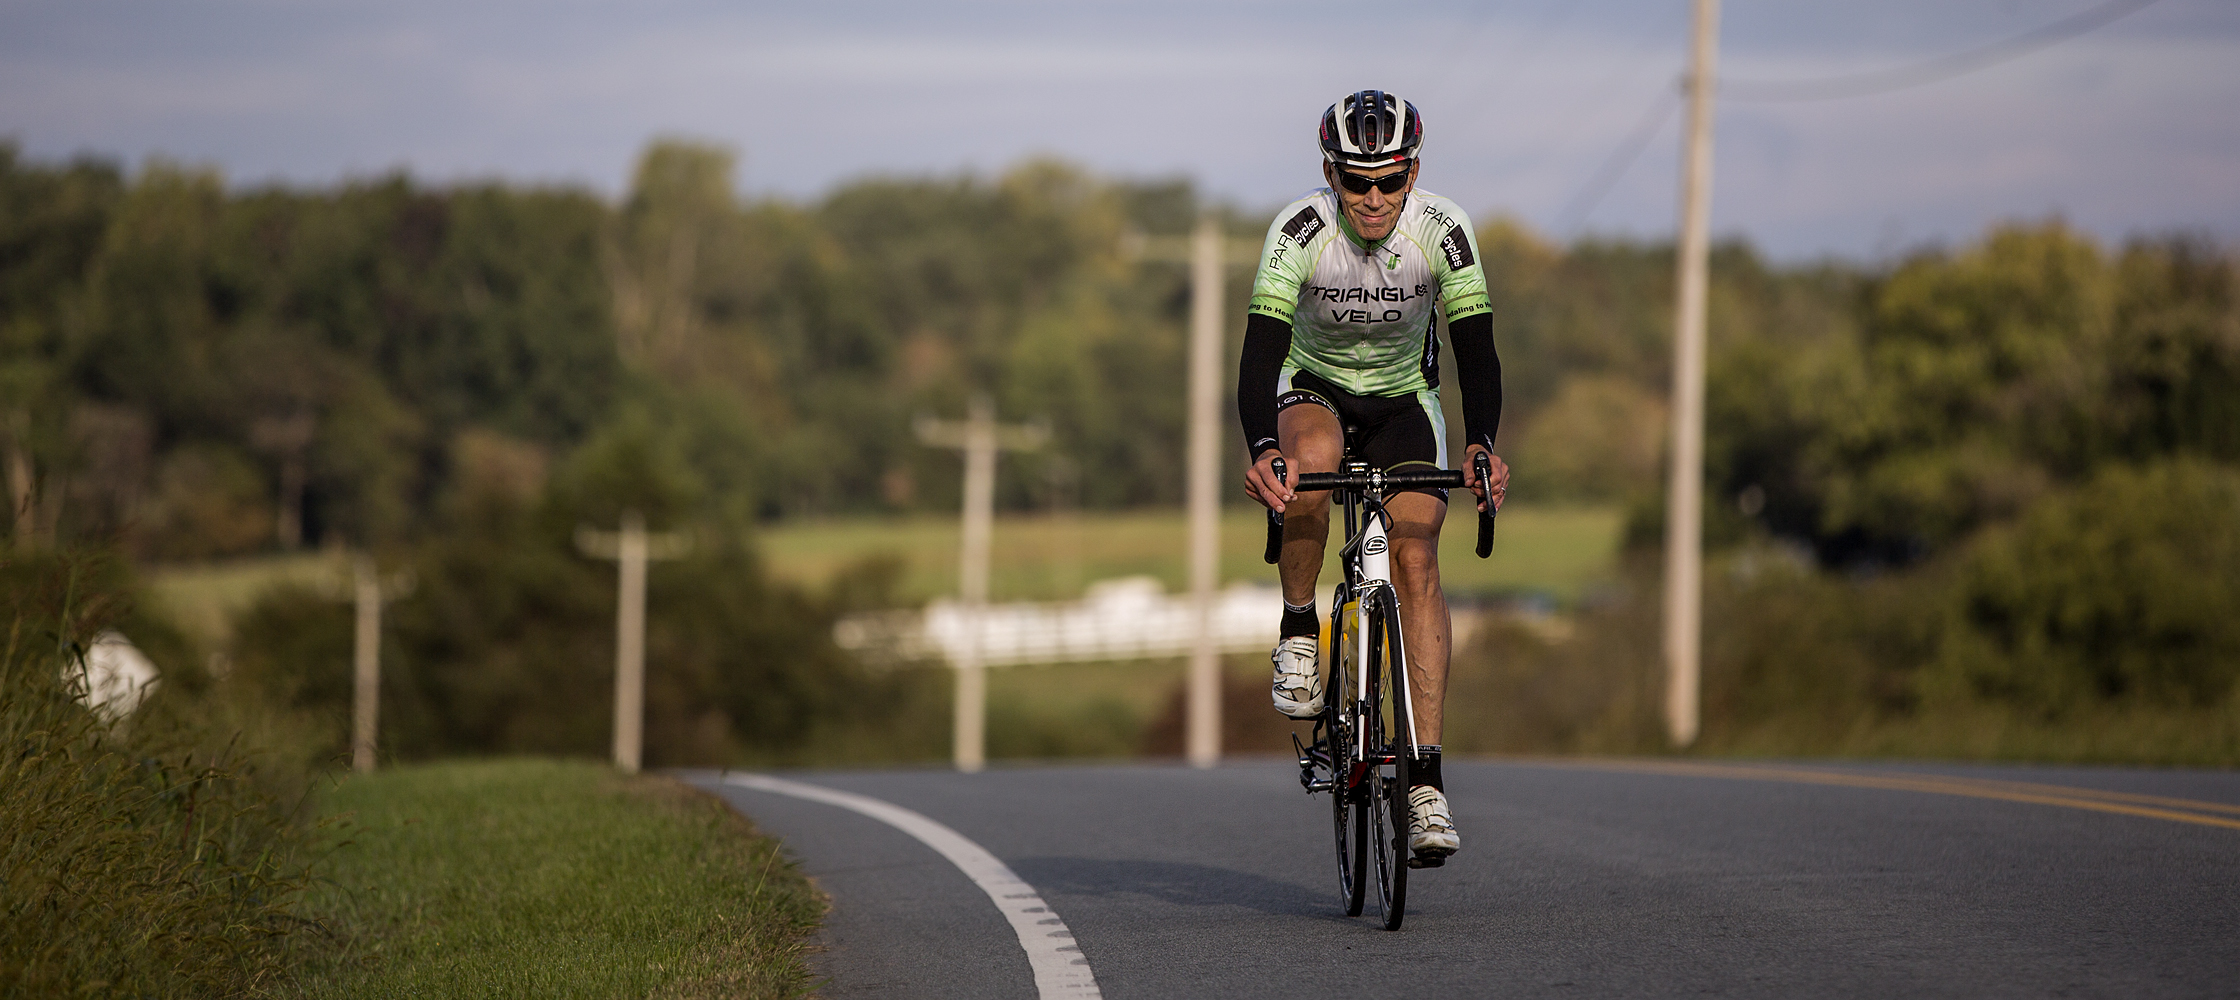 Peter Leousis is back to cycling after hip replacement surgery at Duke